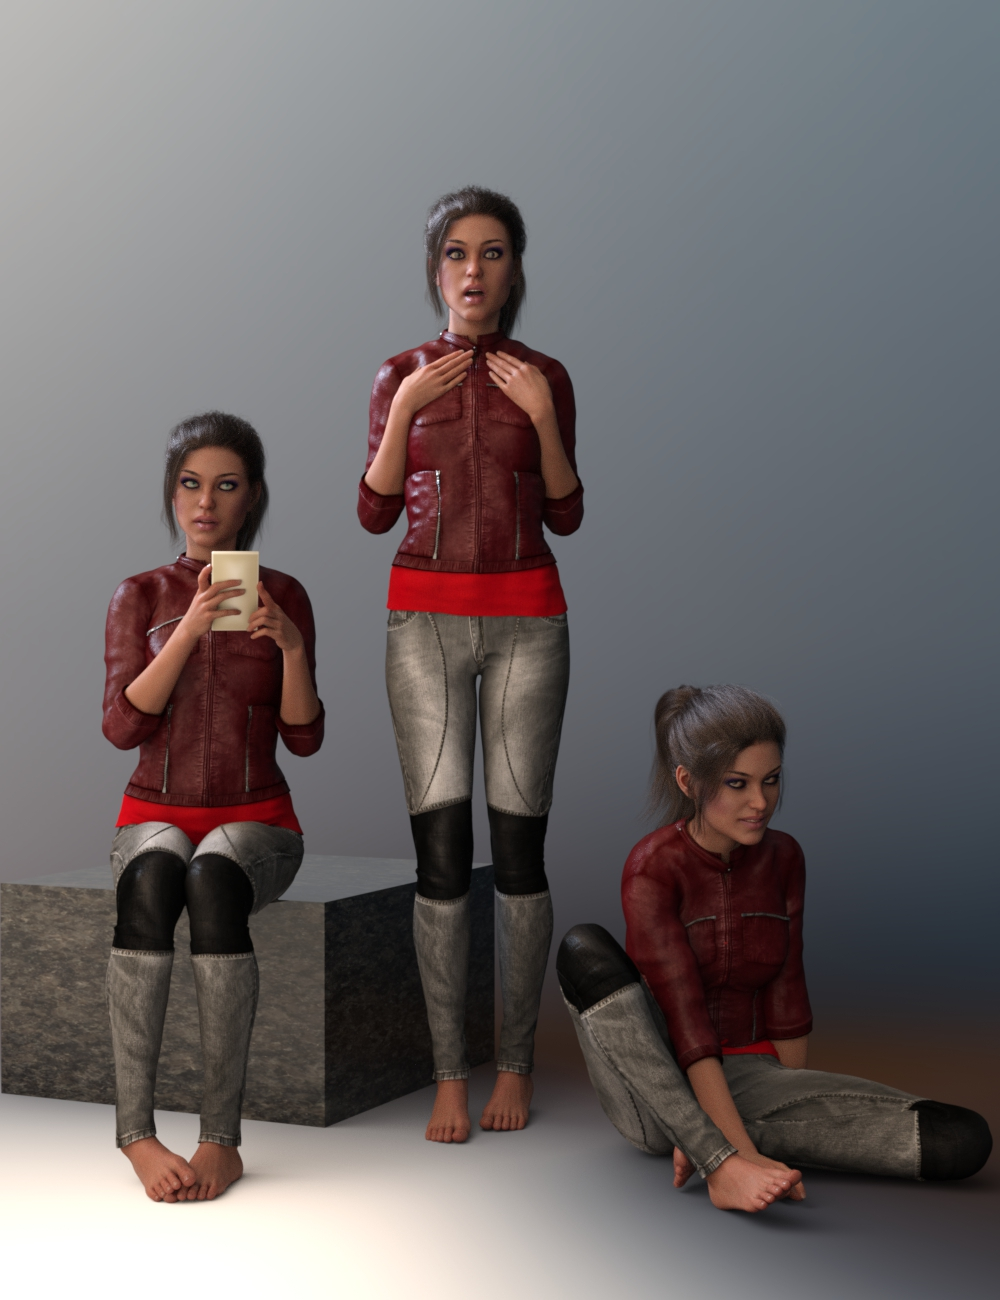 Inherent Spice Poses for Teen Raven 8 by: AliveSheCried, 3D Models by Daz 3D